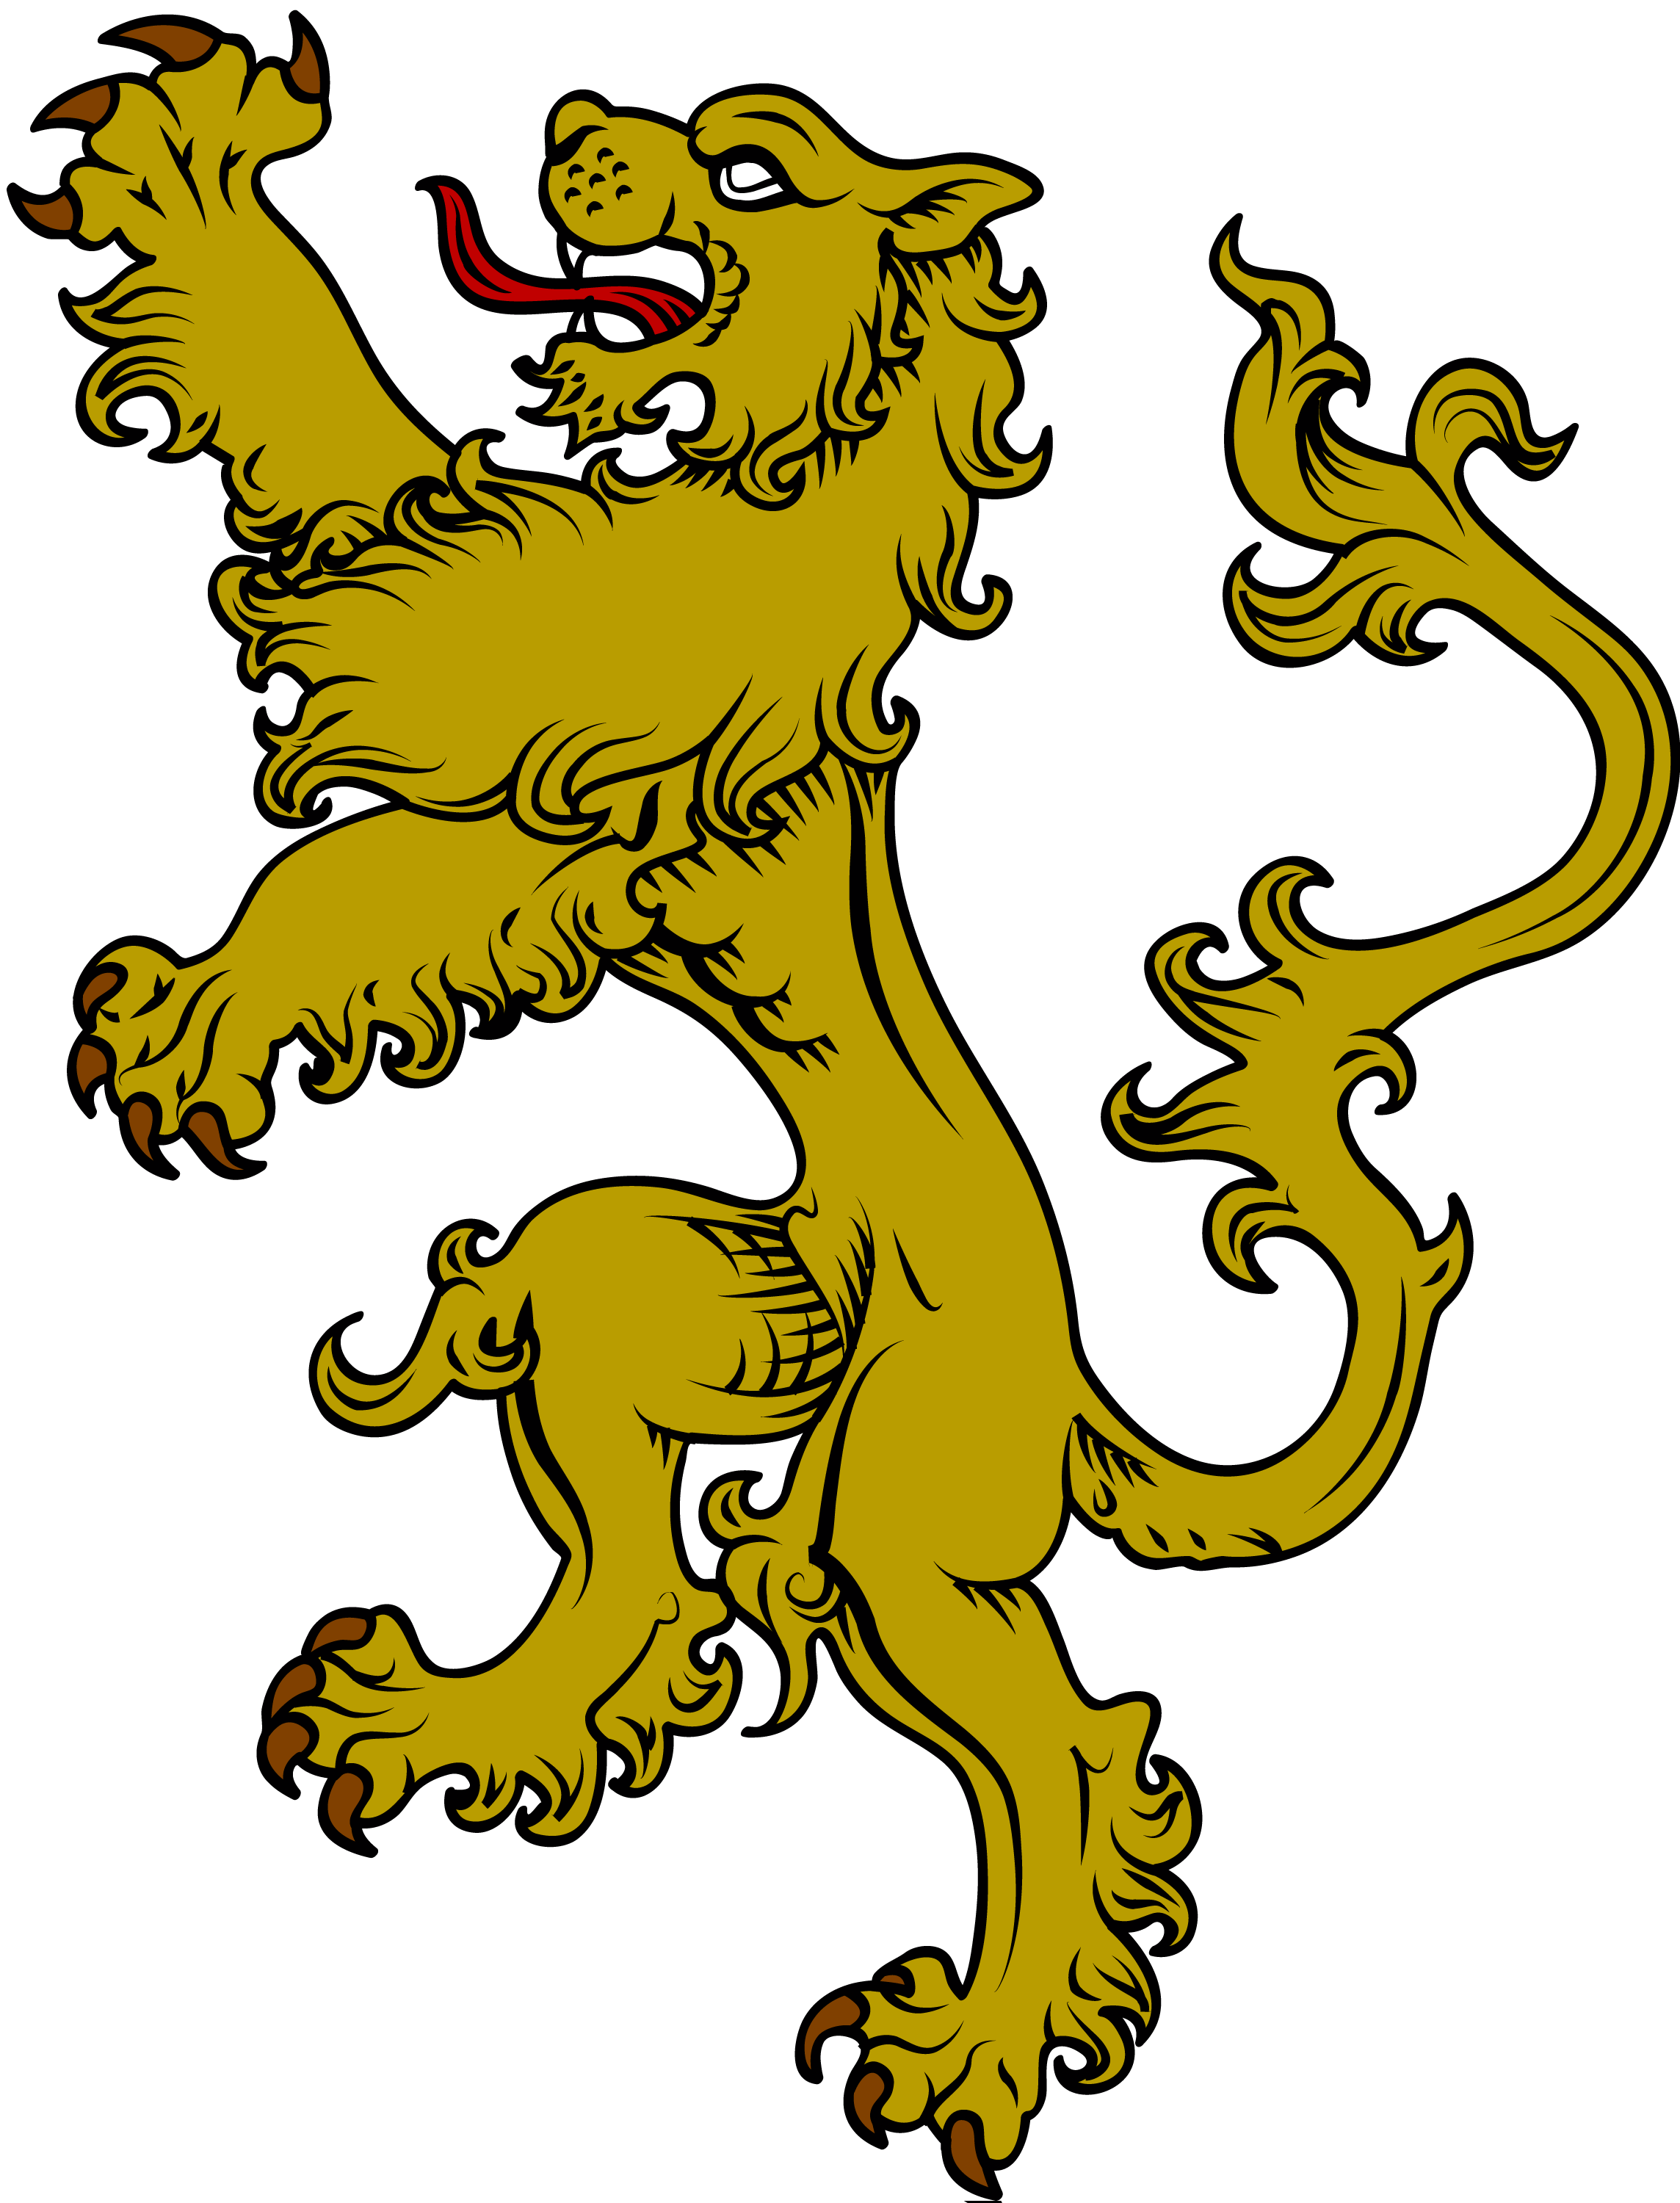 Heraldry crown clipart vector clipart download The symbol of a lion is very common in heraldry and is used most ... clipart download